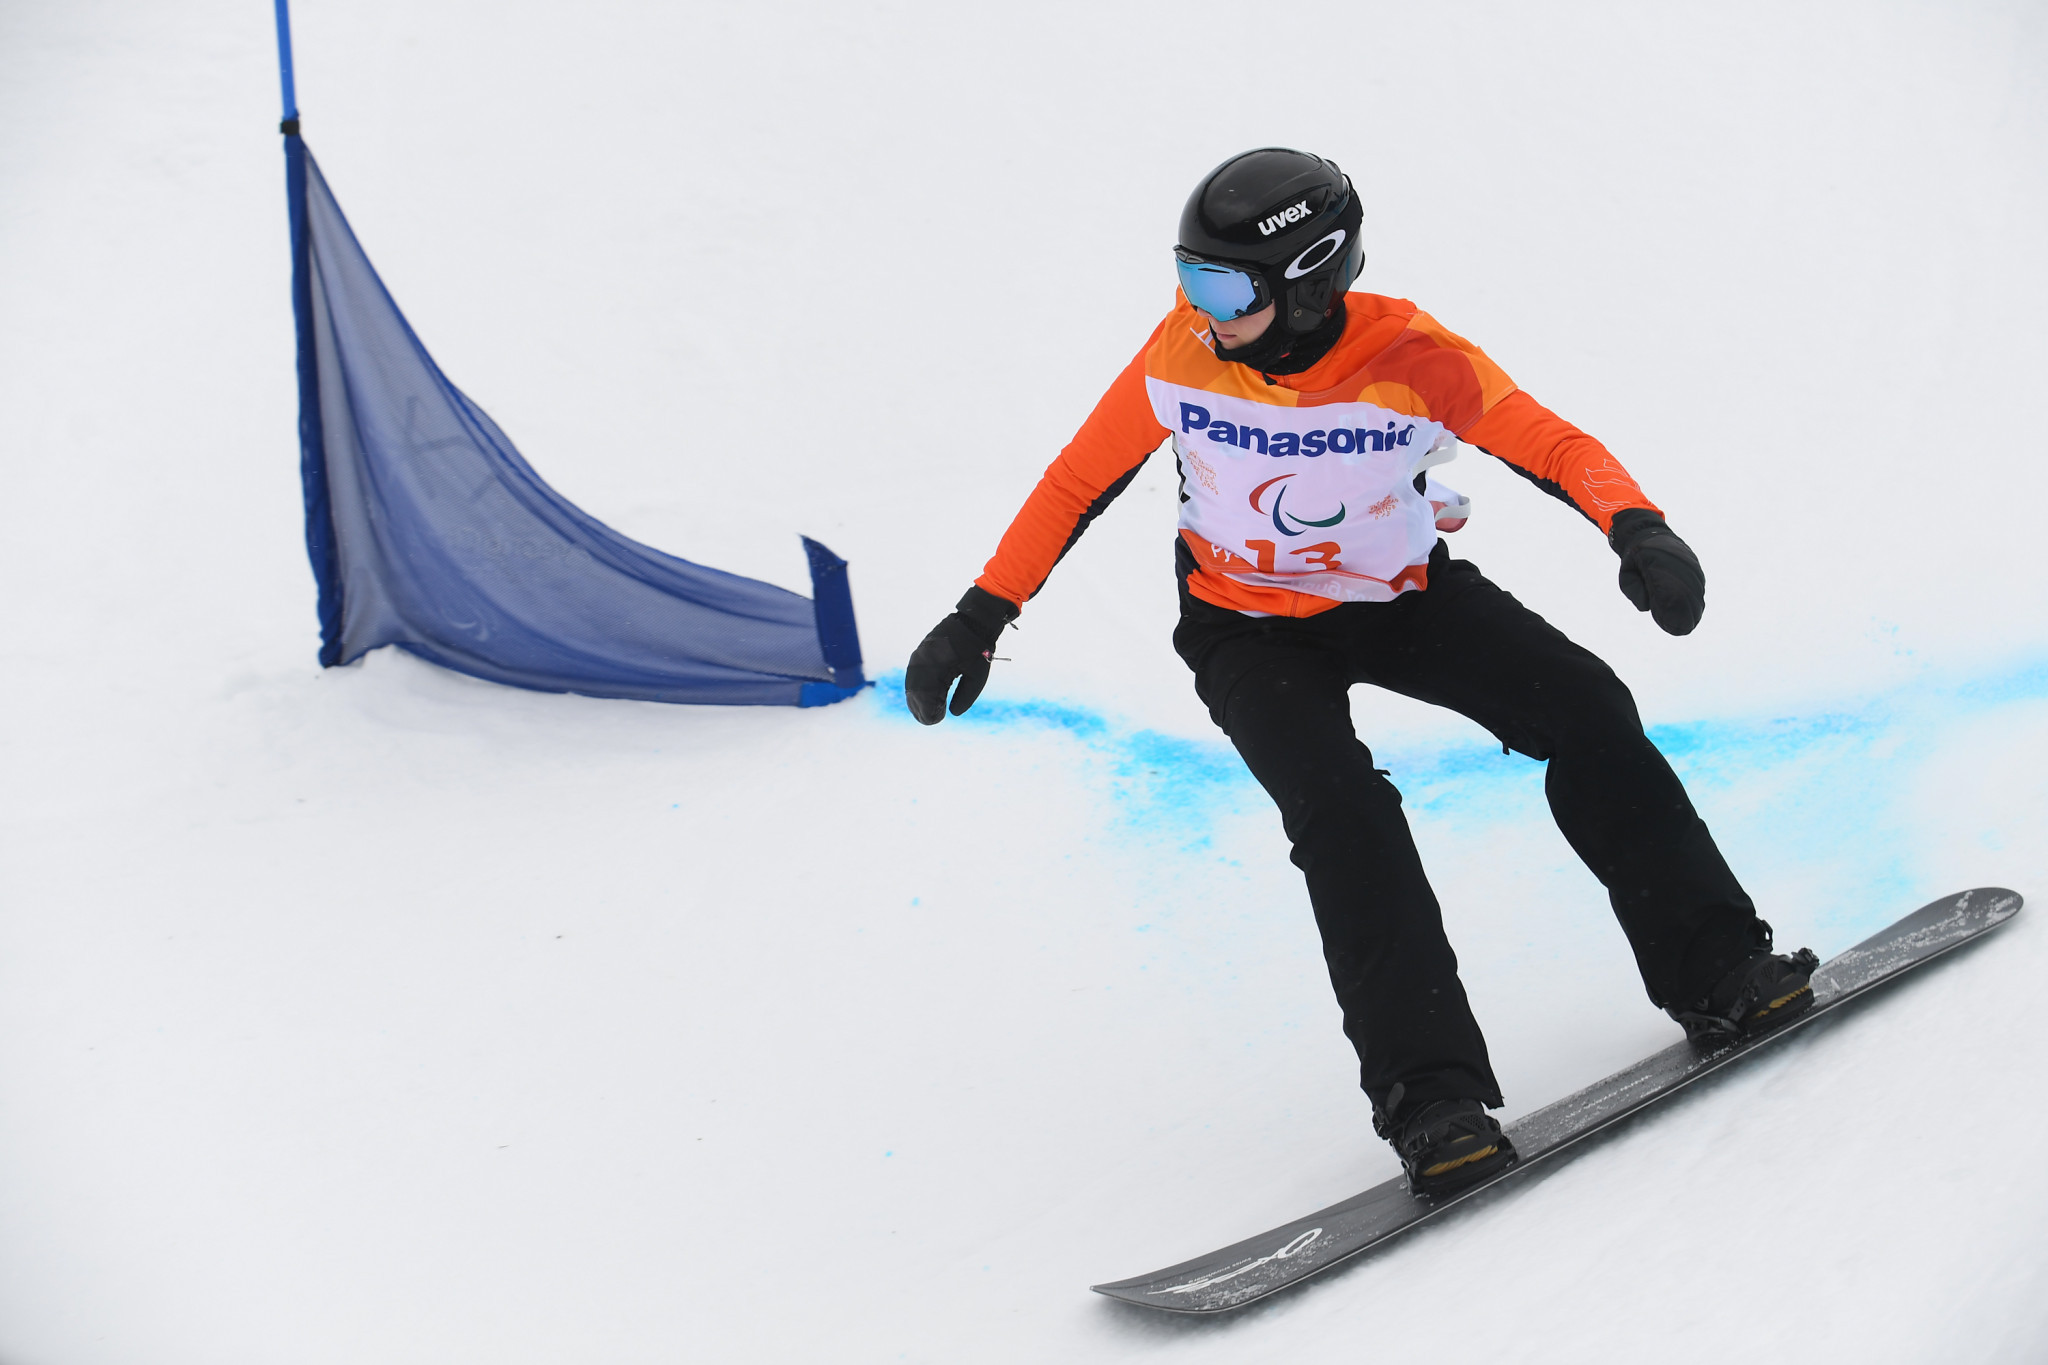 Dutch stars impress as Para Snowboard World Cup season begins